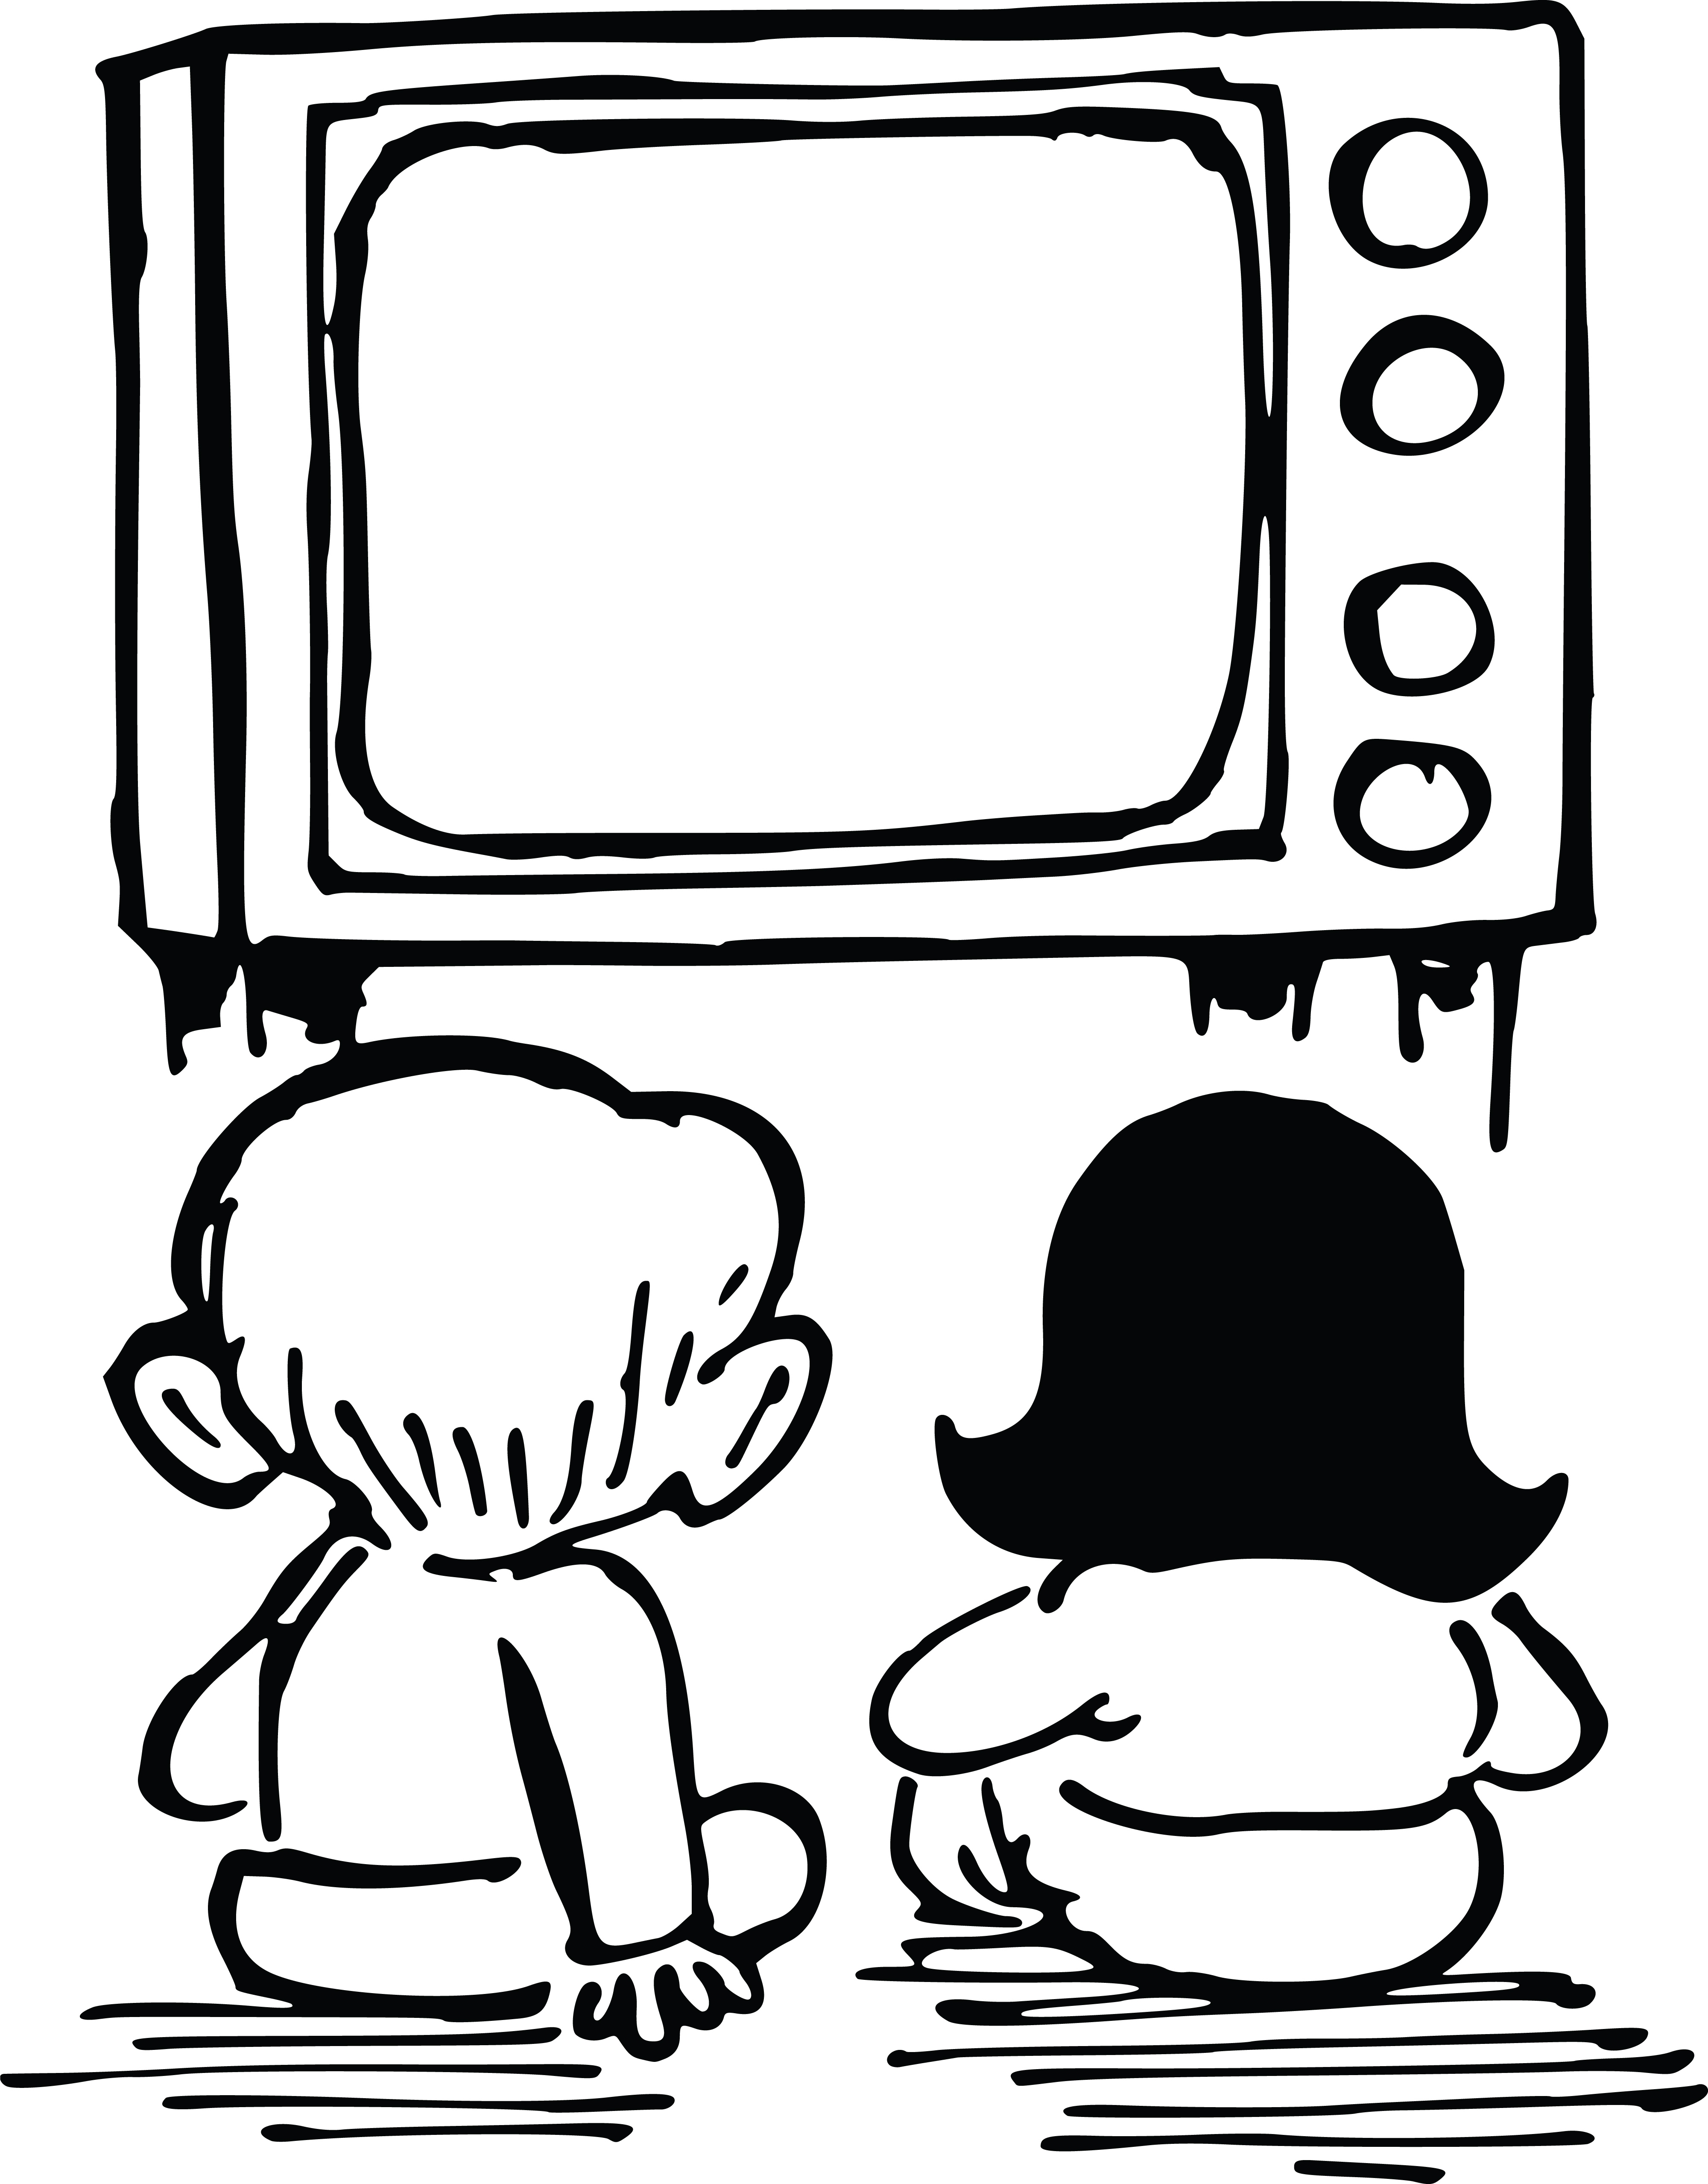 Pictures Of Kids Watching Tv | Free download best Pictures Of Kids ...